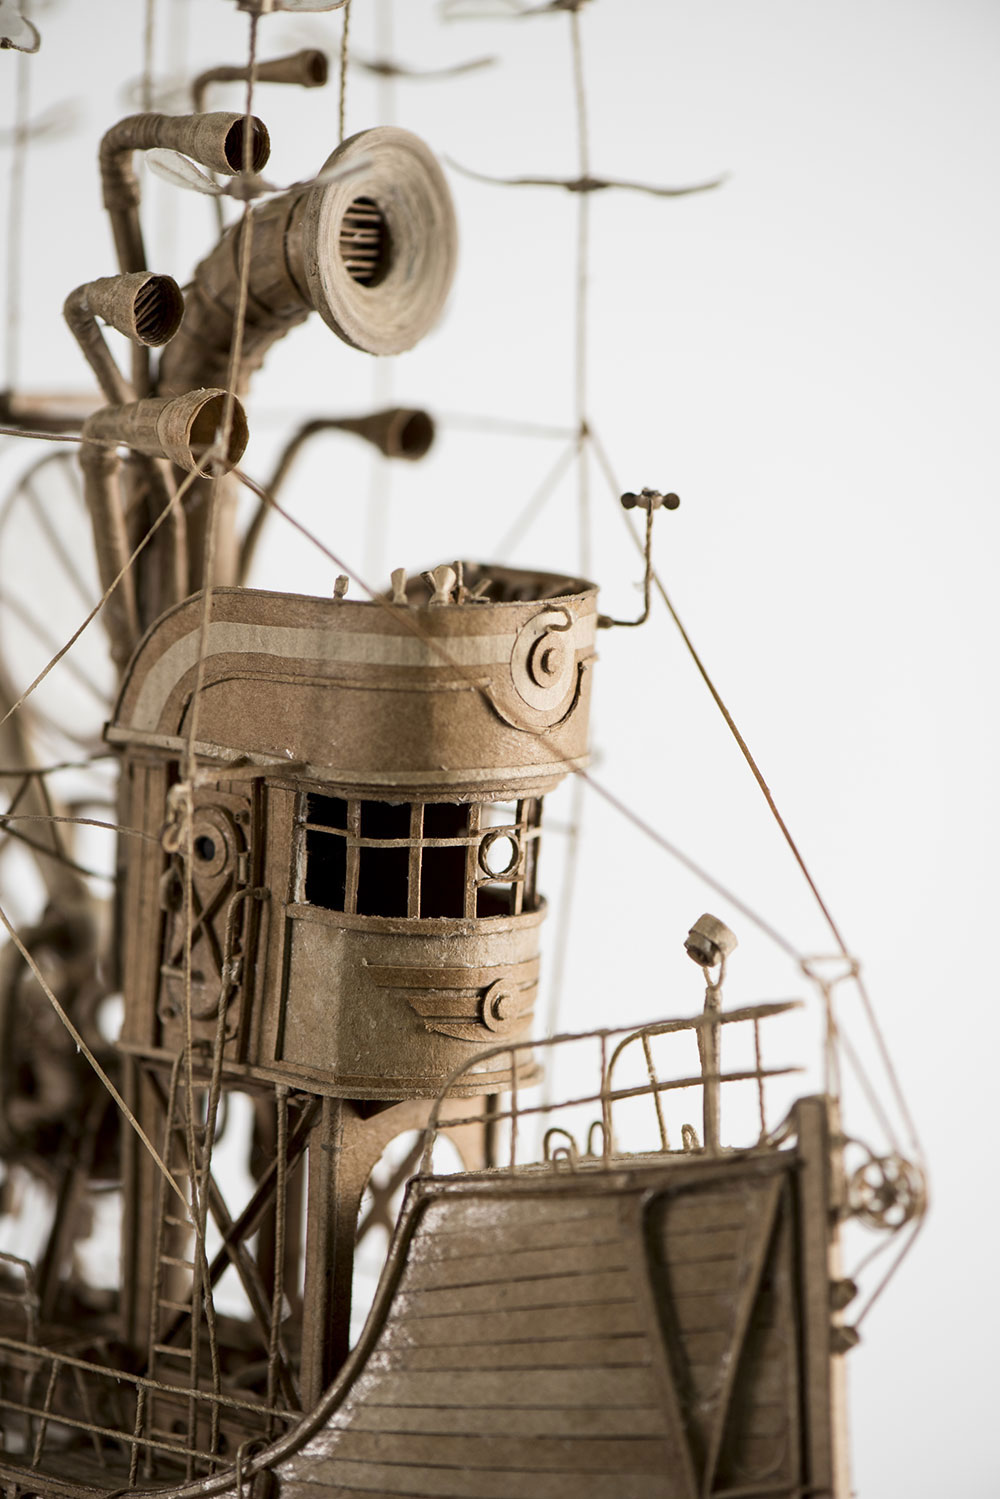 An Astounding Series of Airships Handcrafted in Cardboard by Jeroen van Kesteren